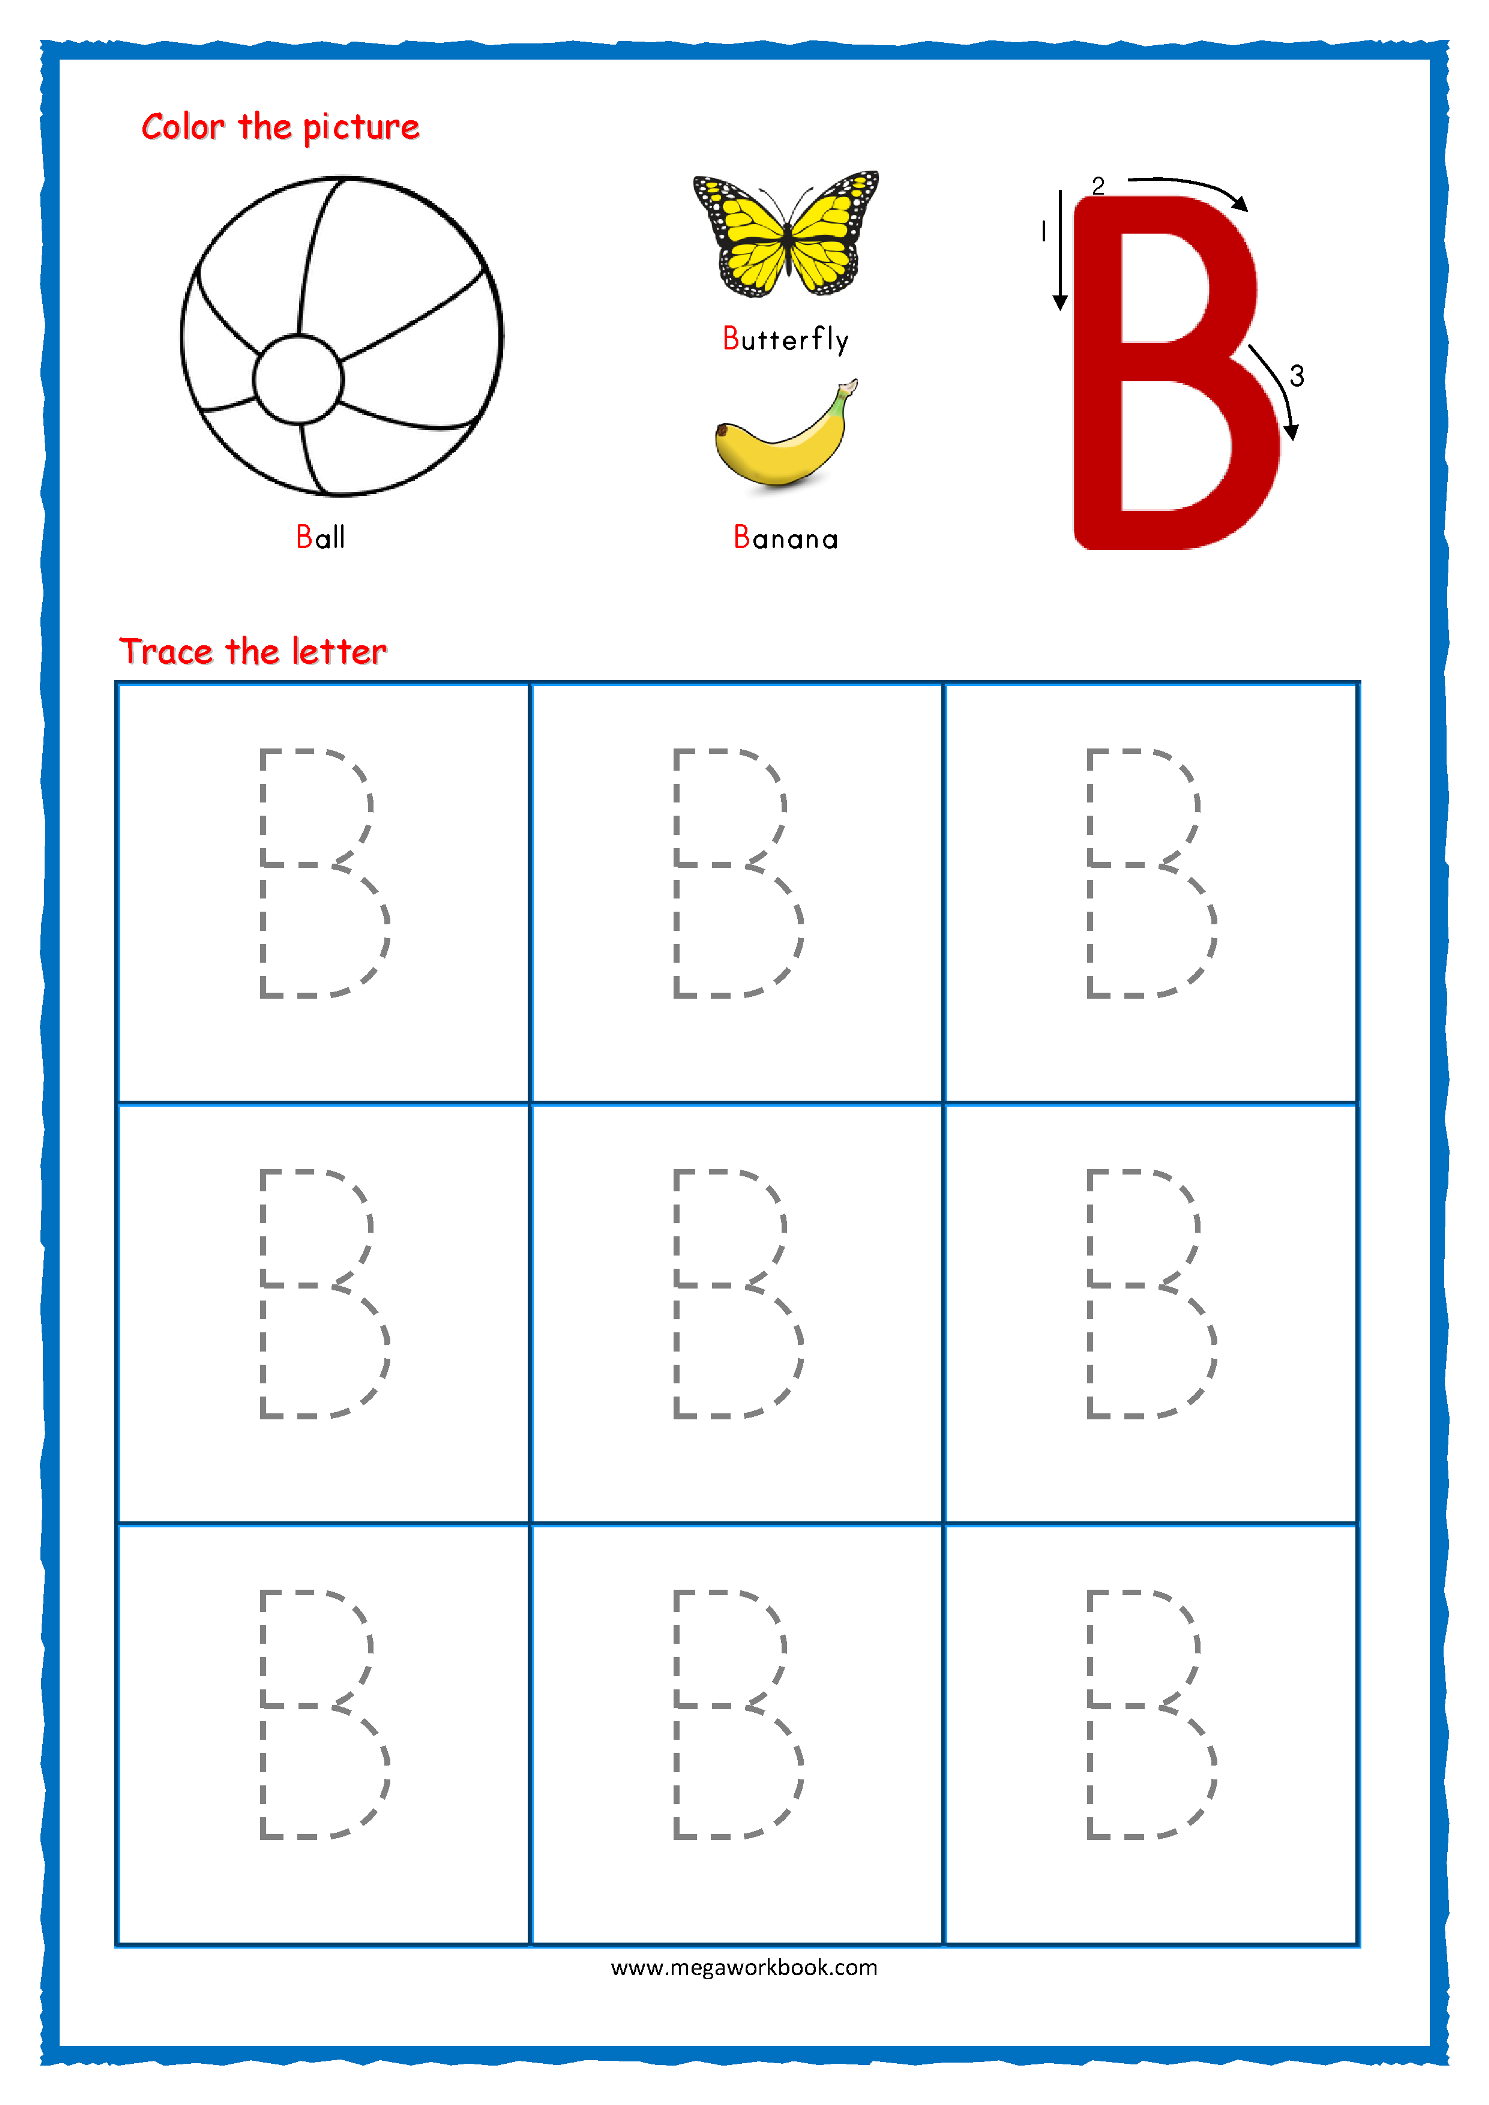 Coloring Book : Free Preschool Printables Coloring Book inside Tracing Letter S Worksheets